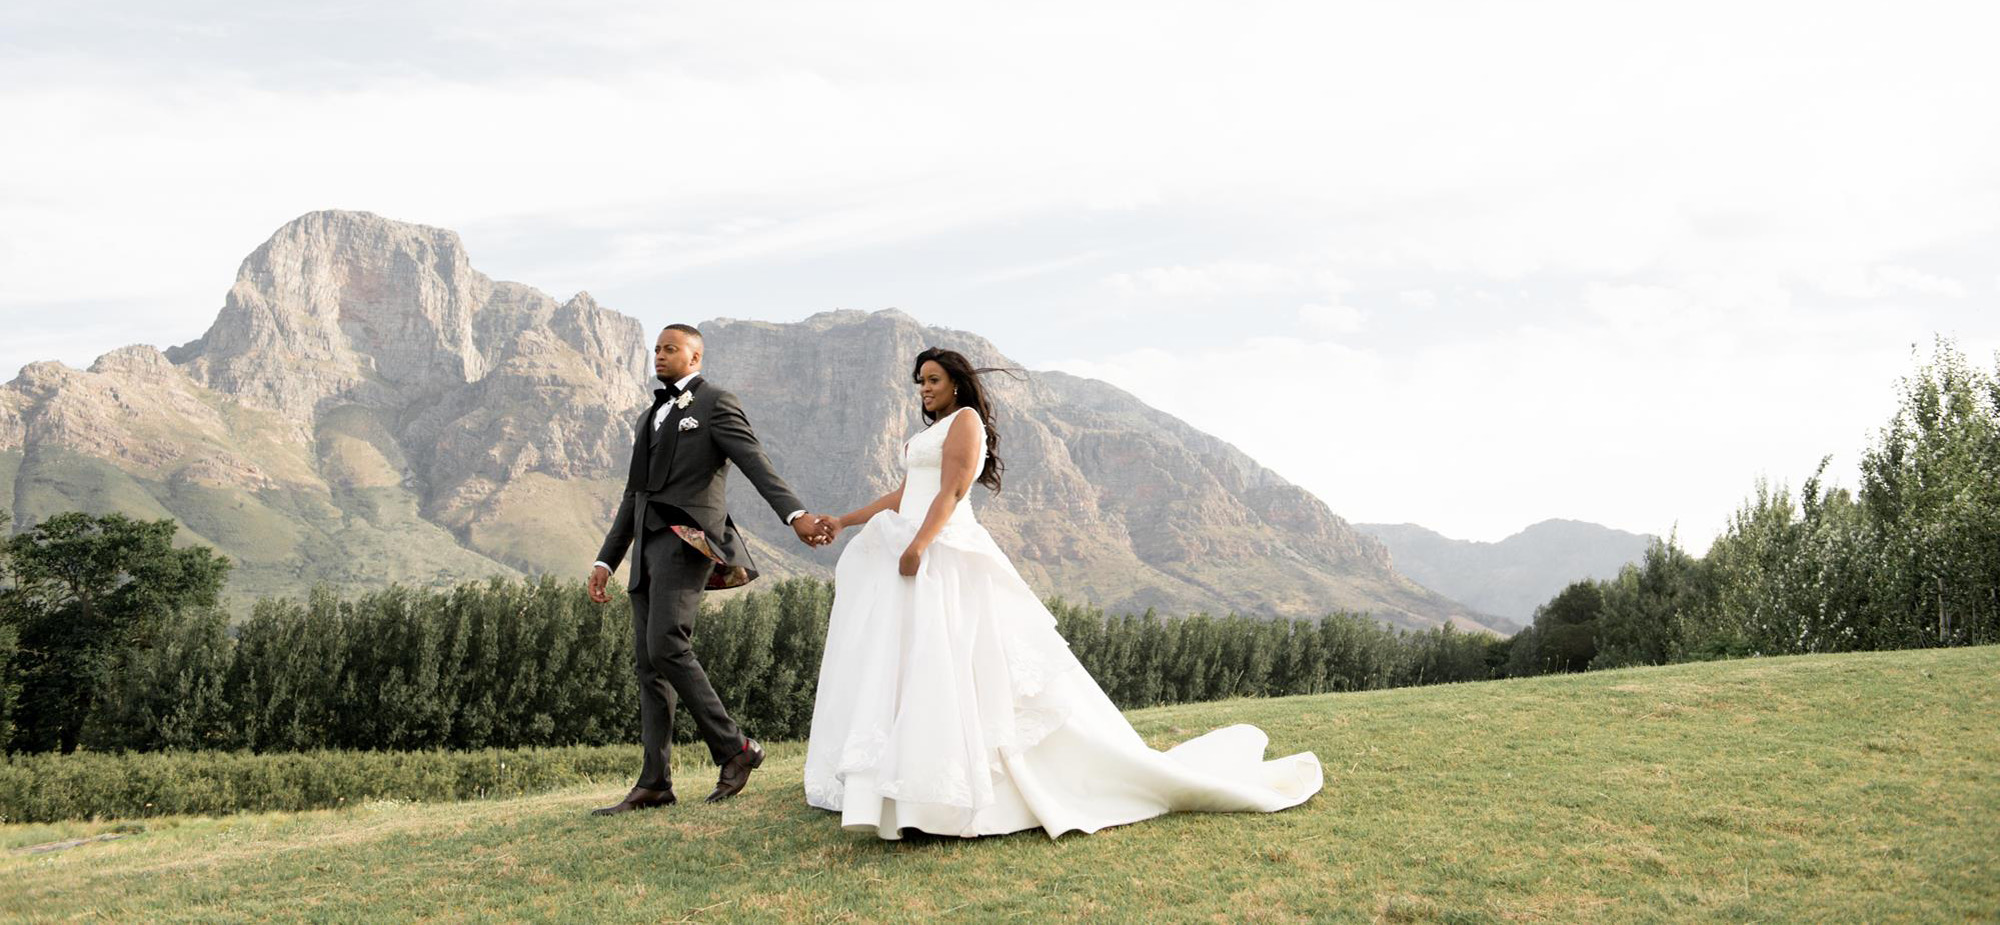 Wedding planners videos of weddings managed by Marius